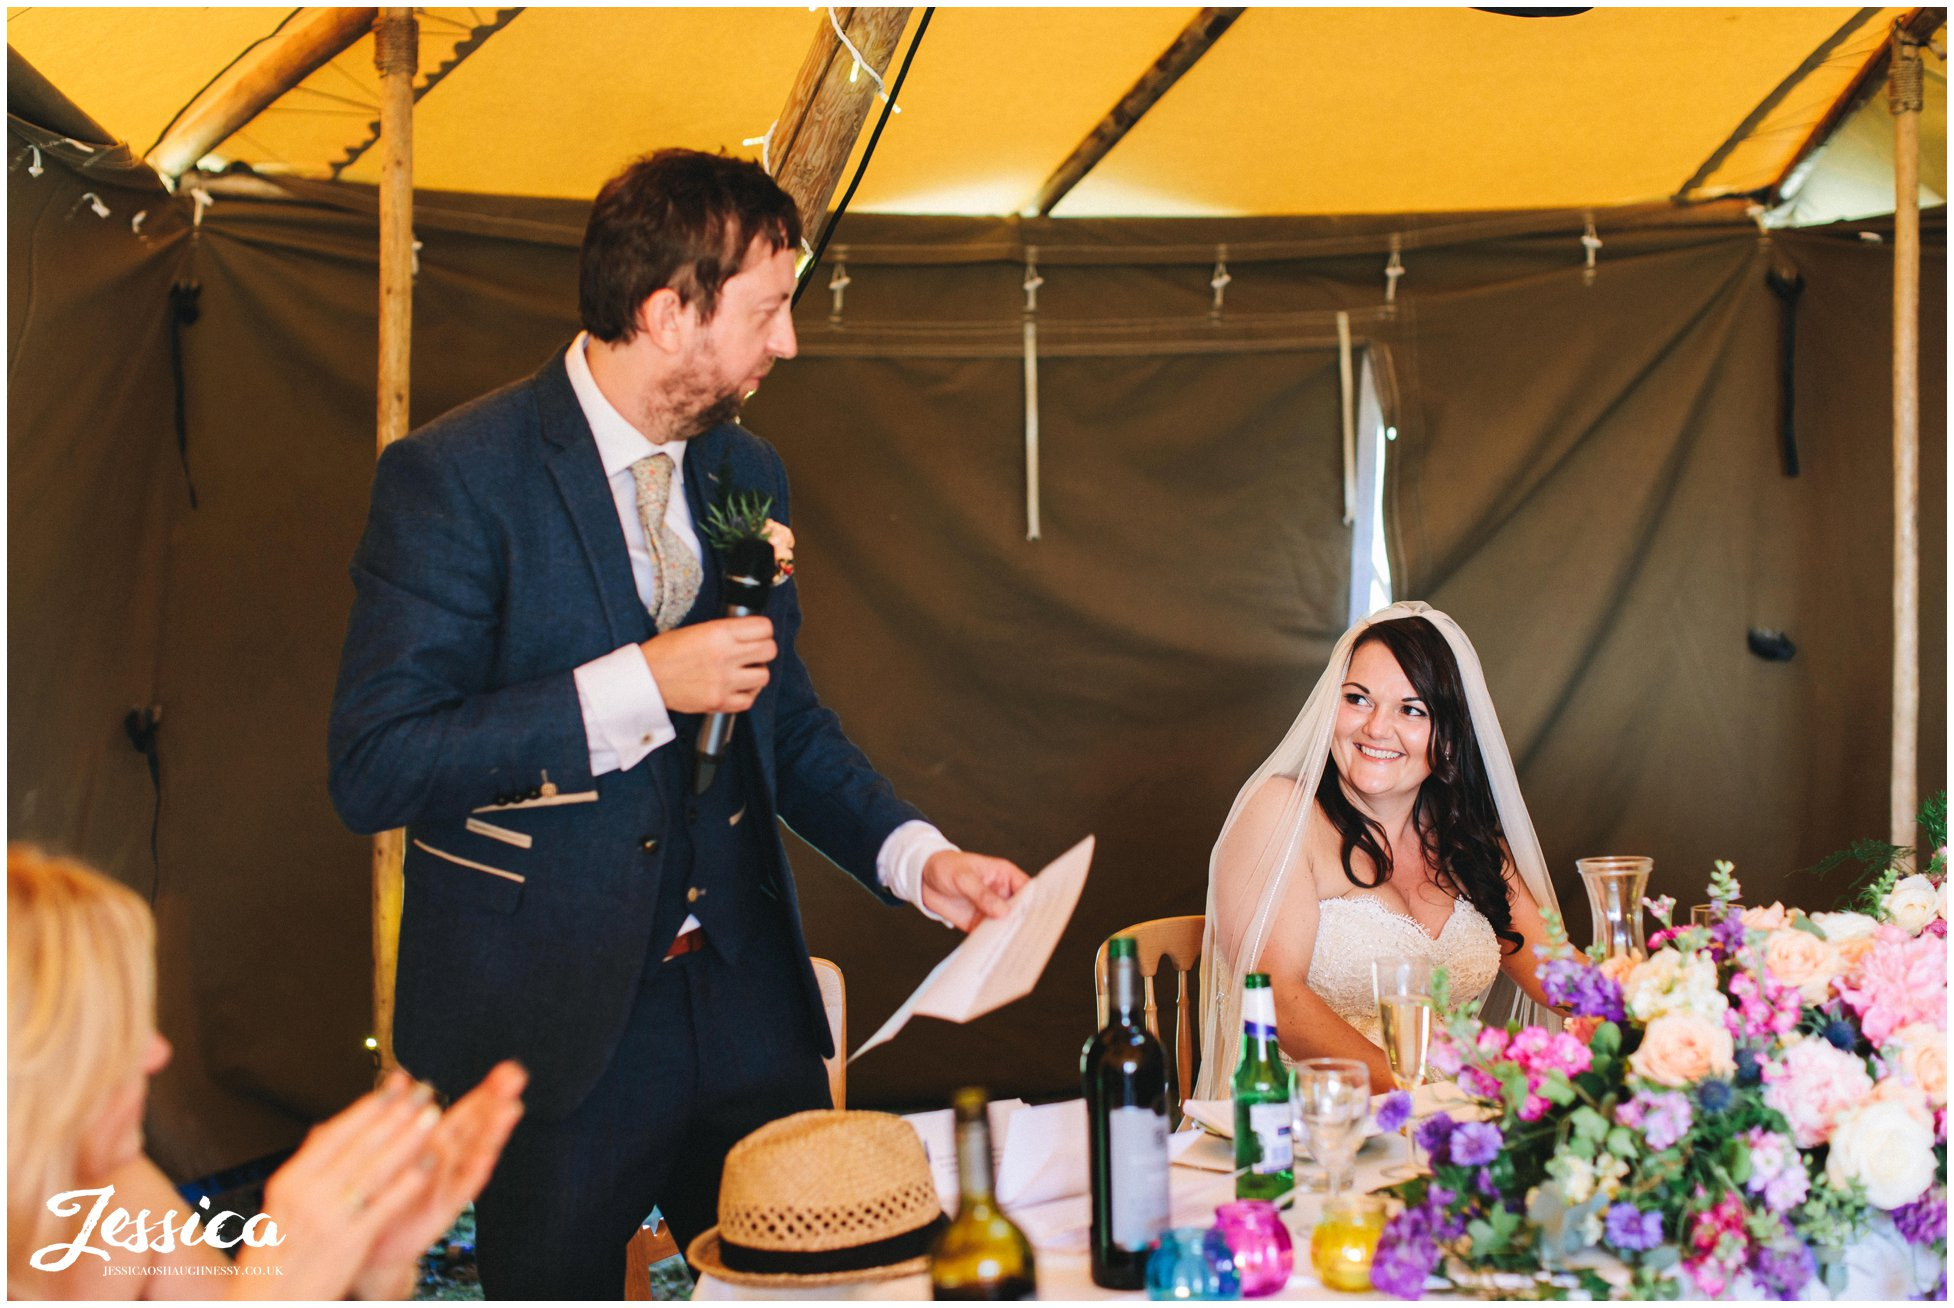 the bride laughs as the groom makes his speech